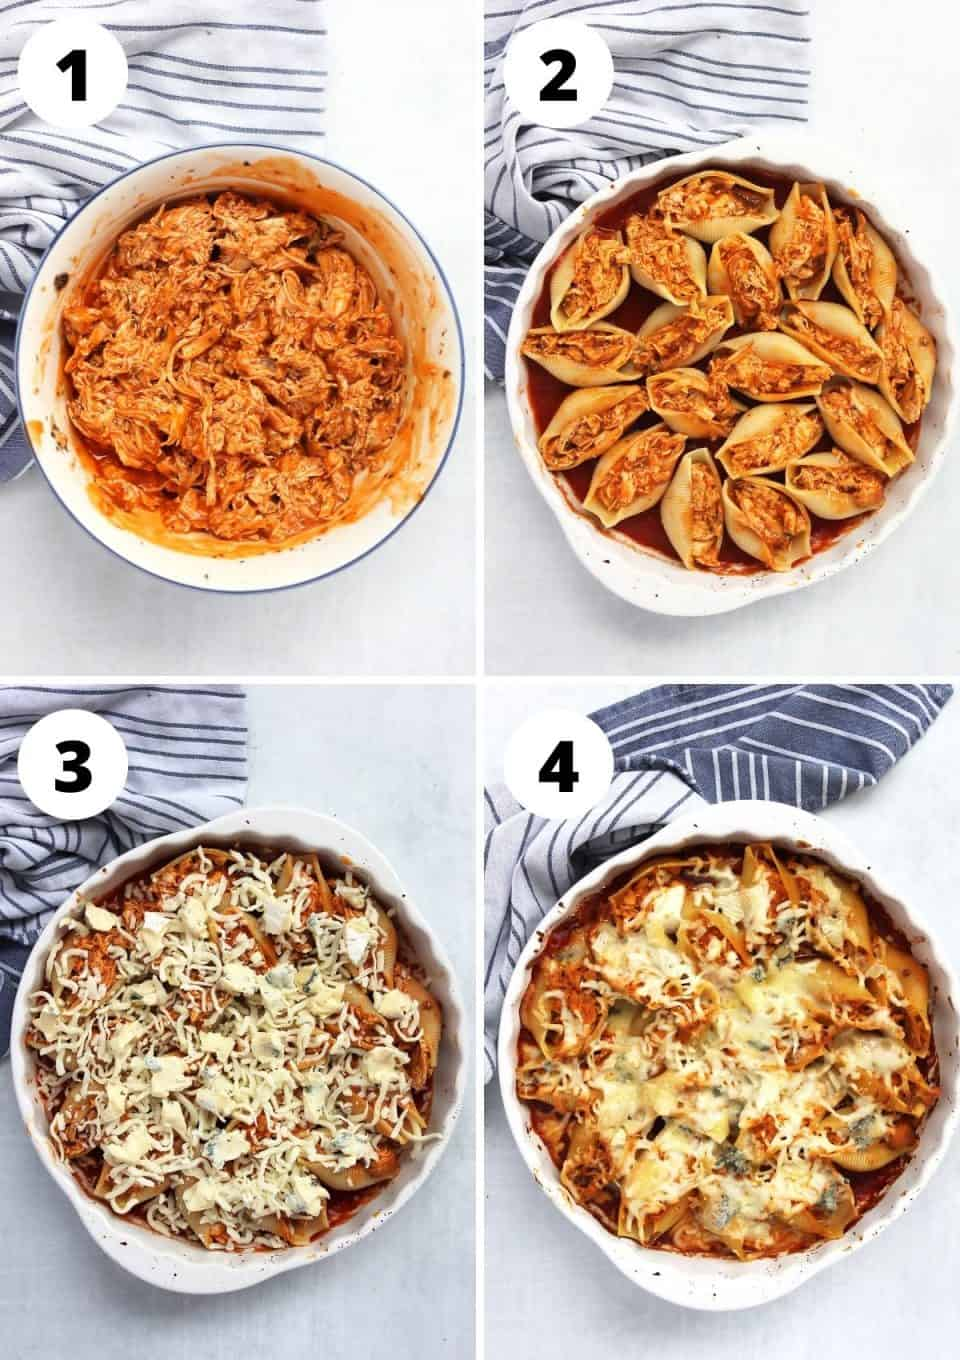 Four step by step photos to show how to make the stuffed shells.